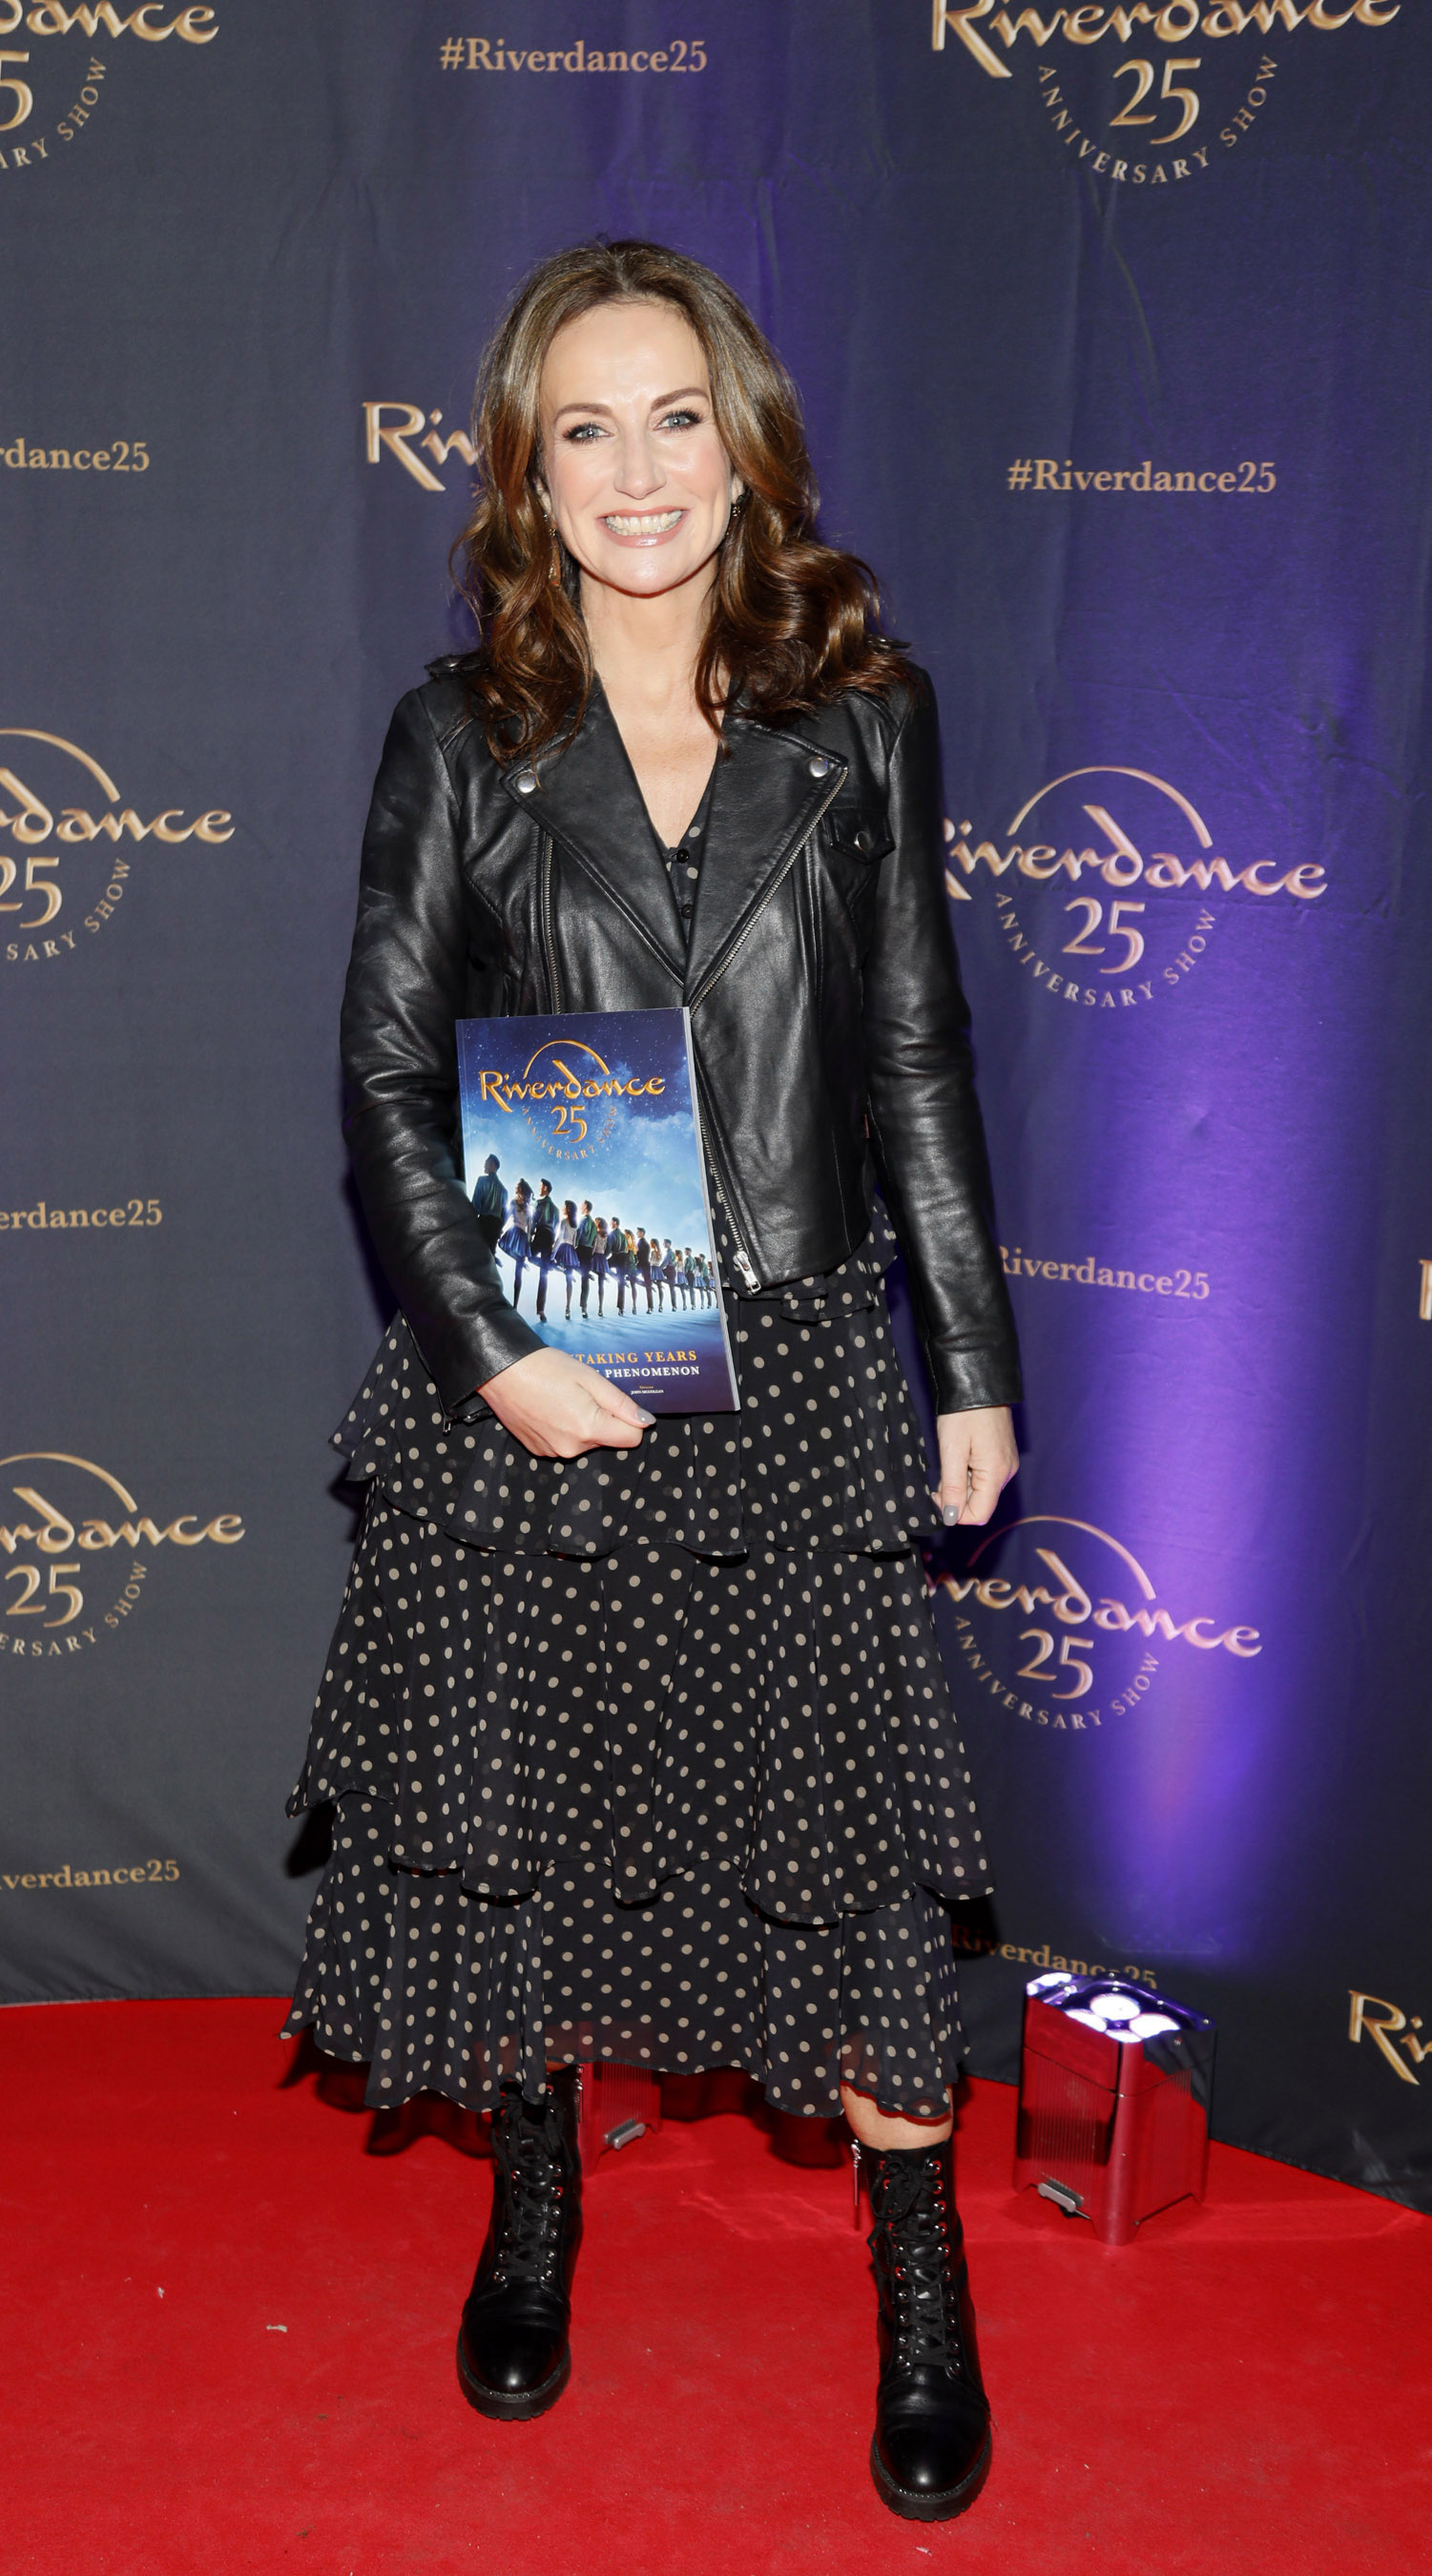 Lorraine Keane at the historic gala performance of Riverdance 25th Anniversary show at 3Arena Dublin exactly 25 years to the day that Riverdance was first performed at the Point Depot.  Photo: Kieran Harnett